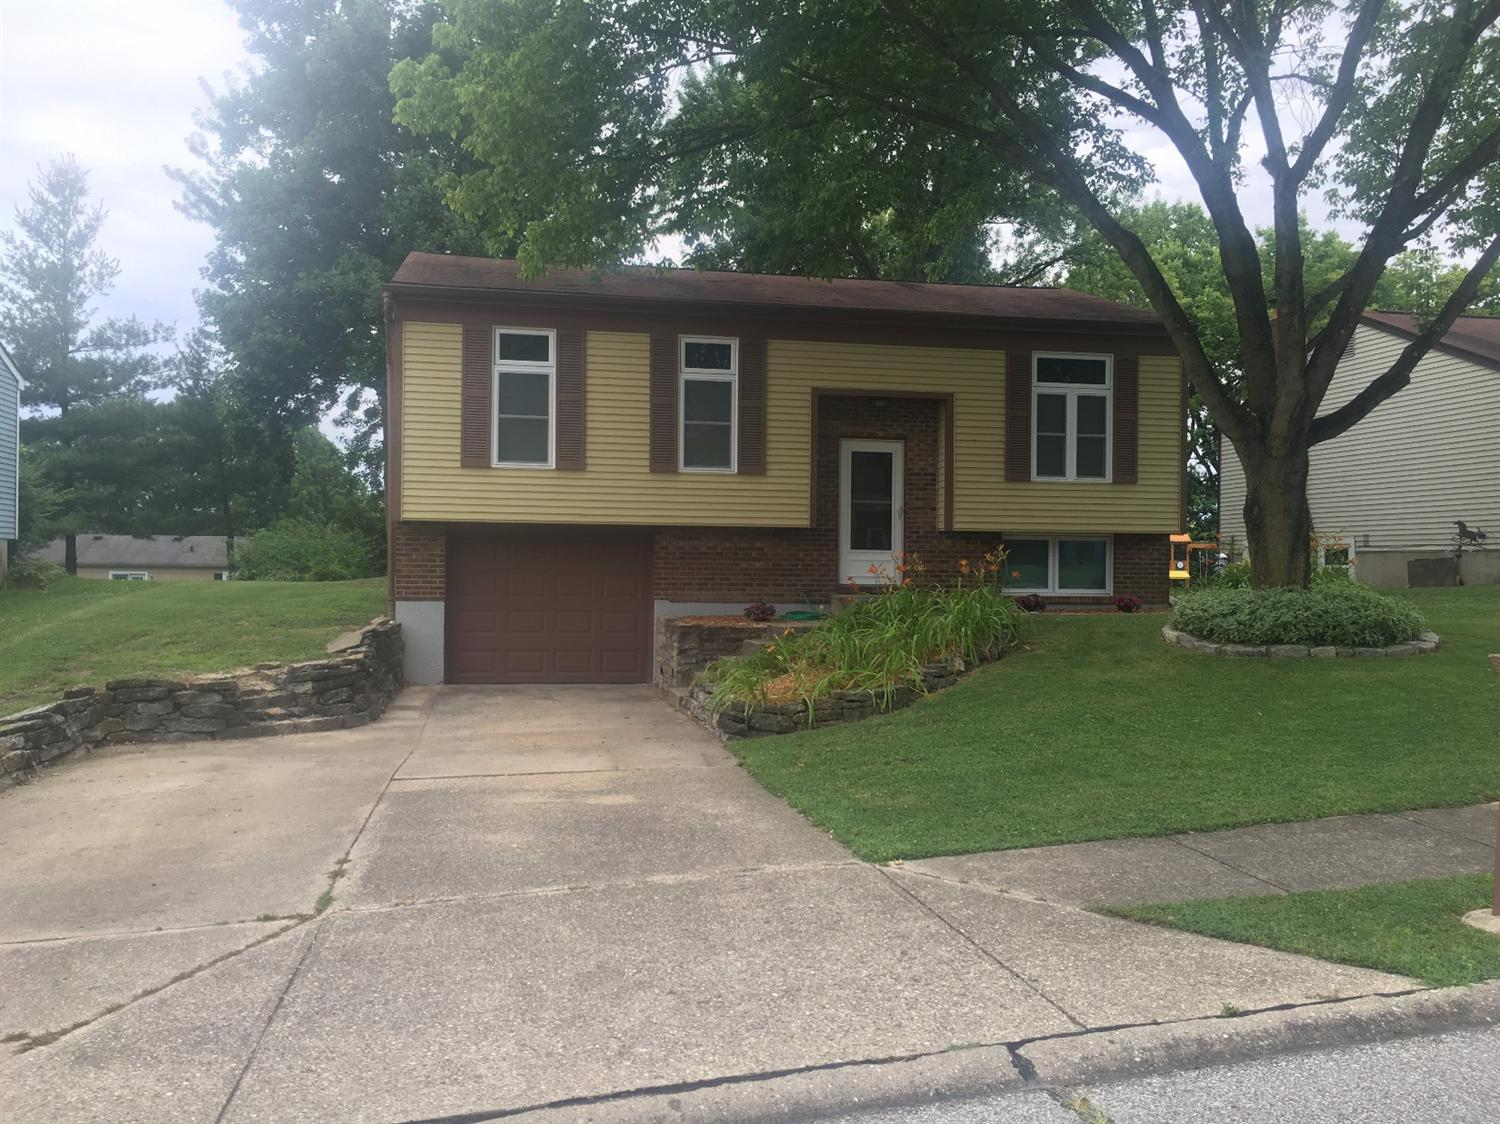 Photo 1 for 455 Glenview Ct Edgewood, KY 41017